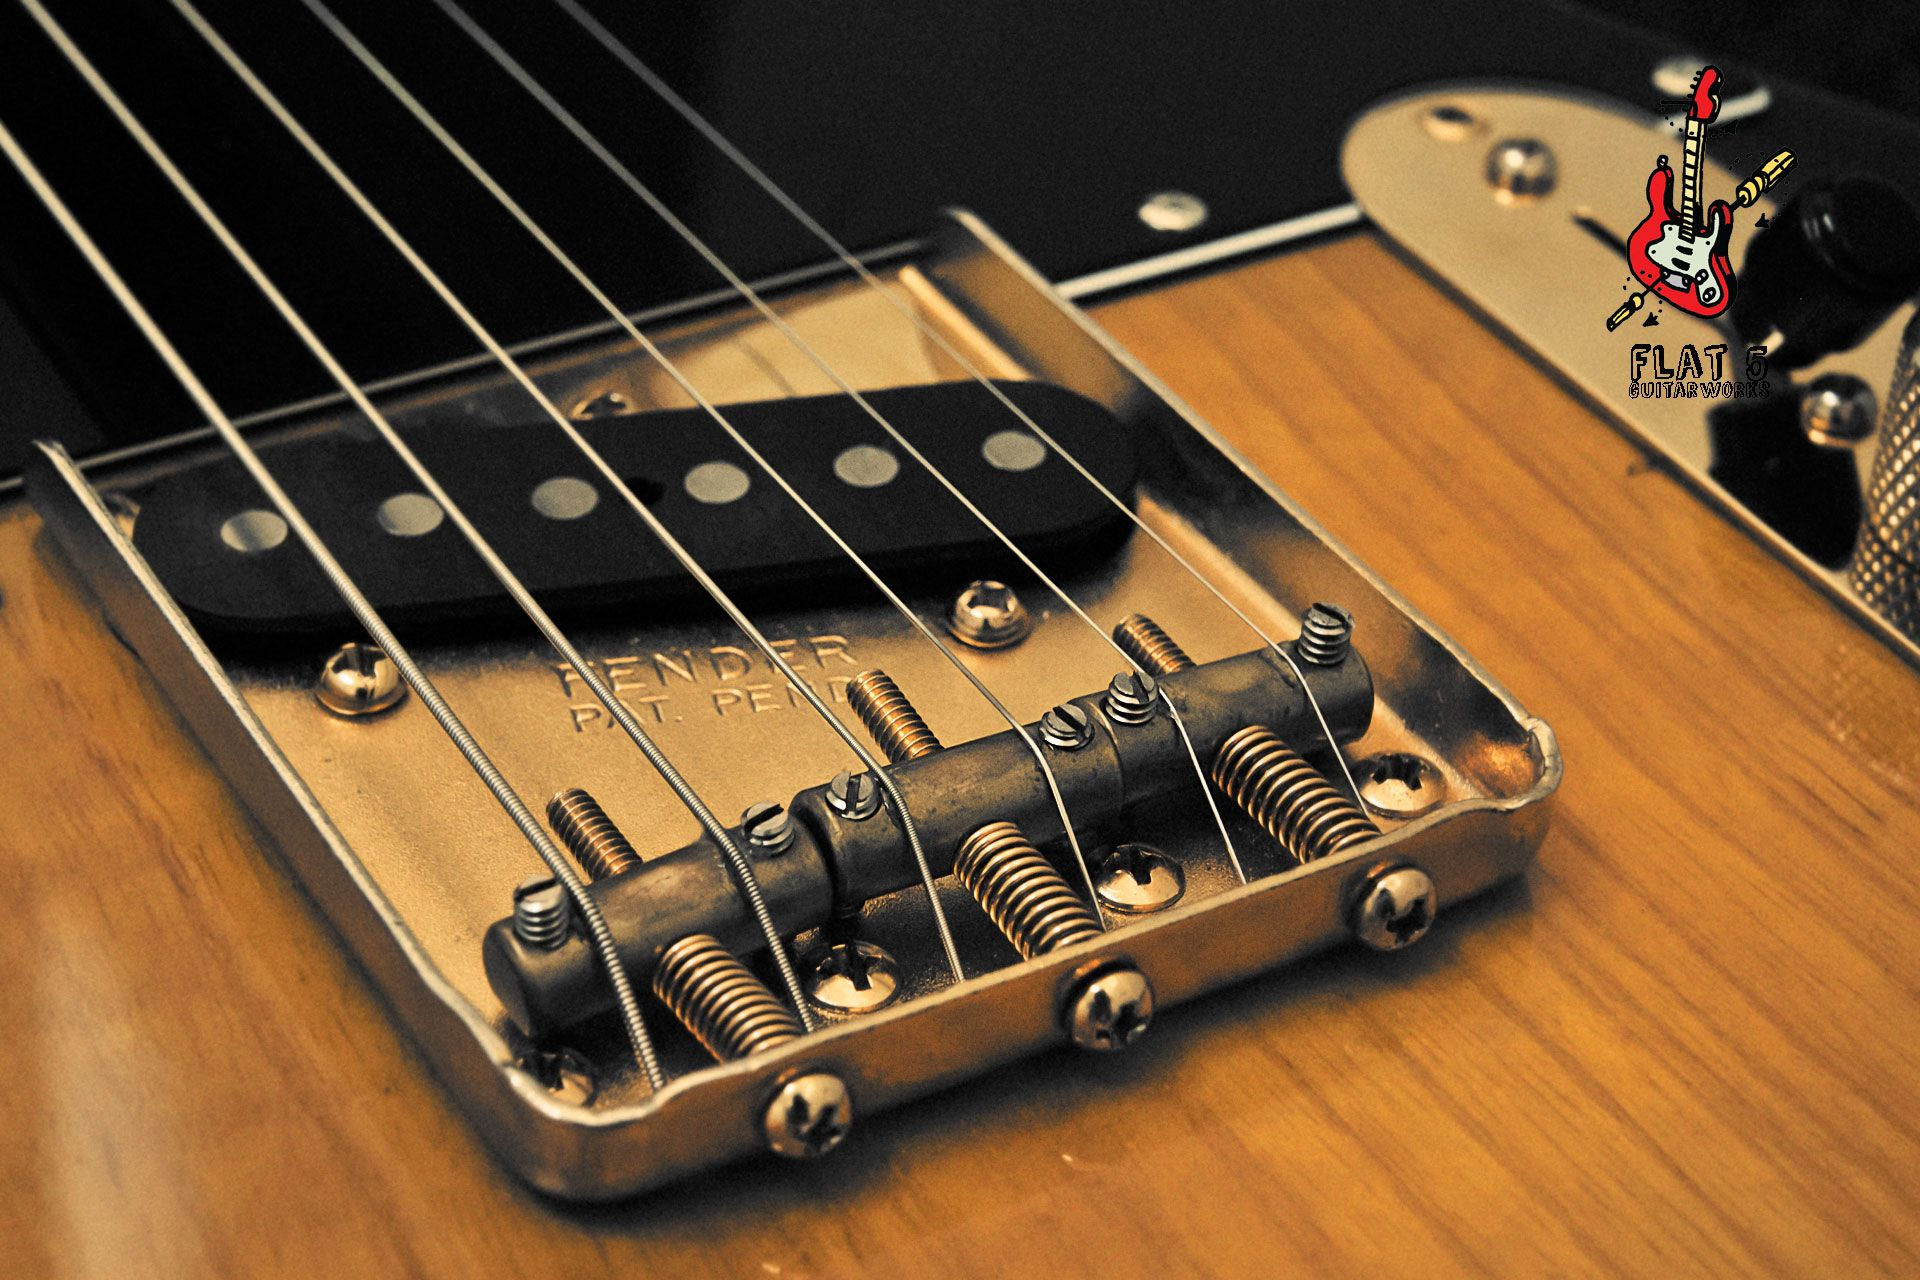 Fender telecaster wallpapers wallpapersafari - Fender wallpaper ...